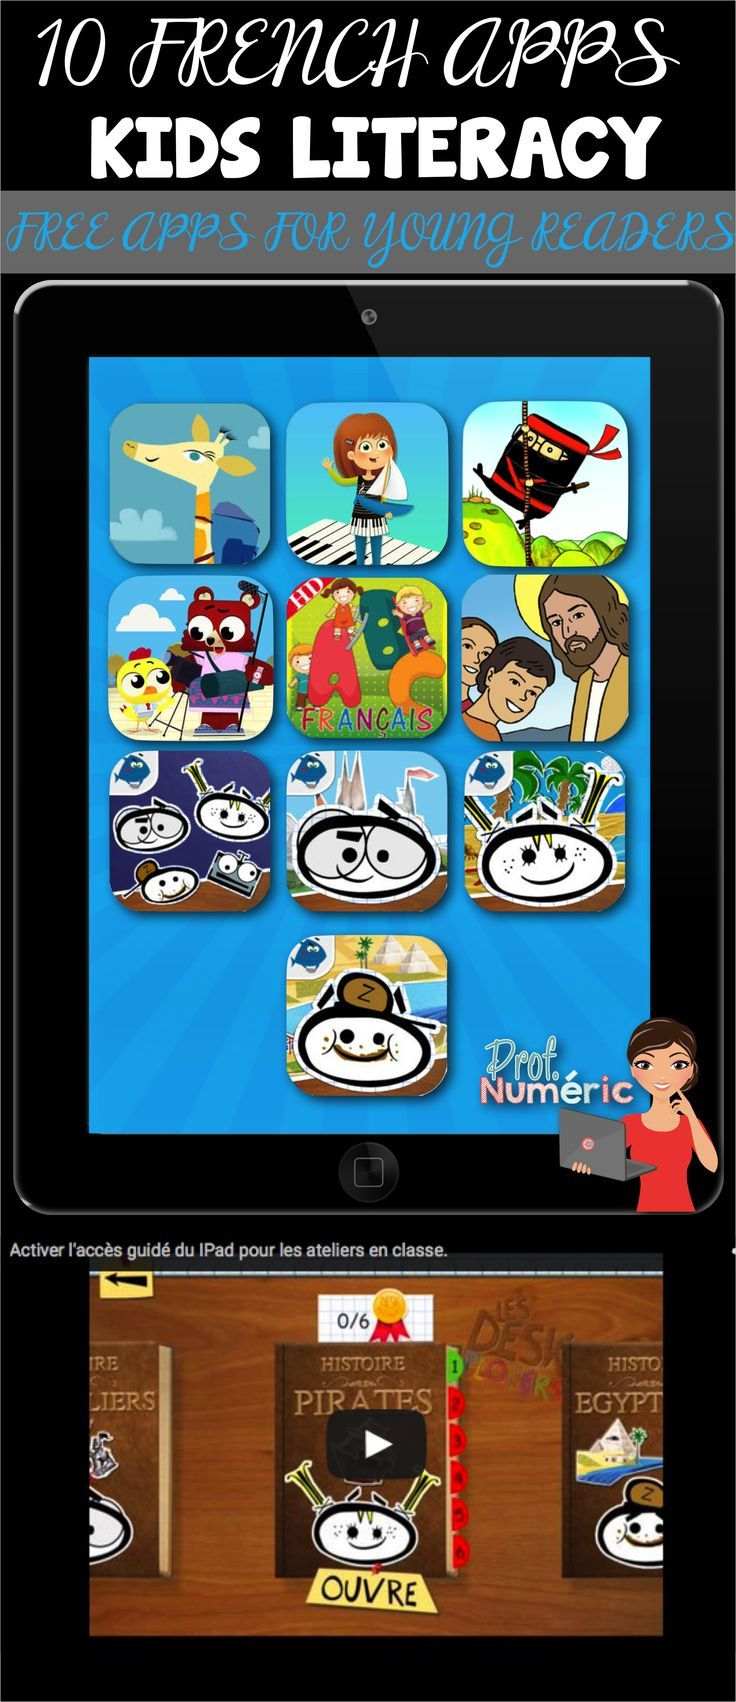 10 FRENCH APPS-Kids Literacy//Freee Apps for young readers. 10 Applications gratuites pour les jeunes lecteurs dbutantes.